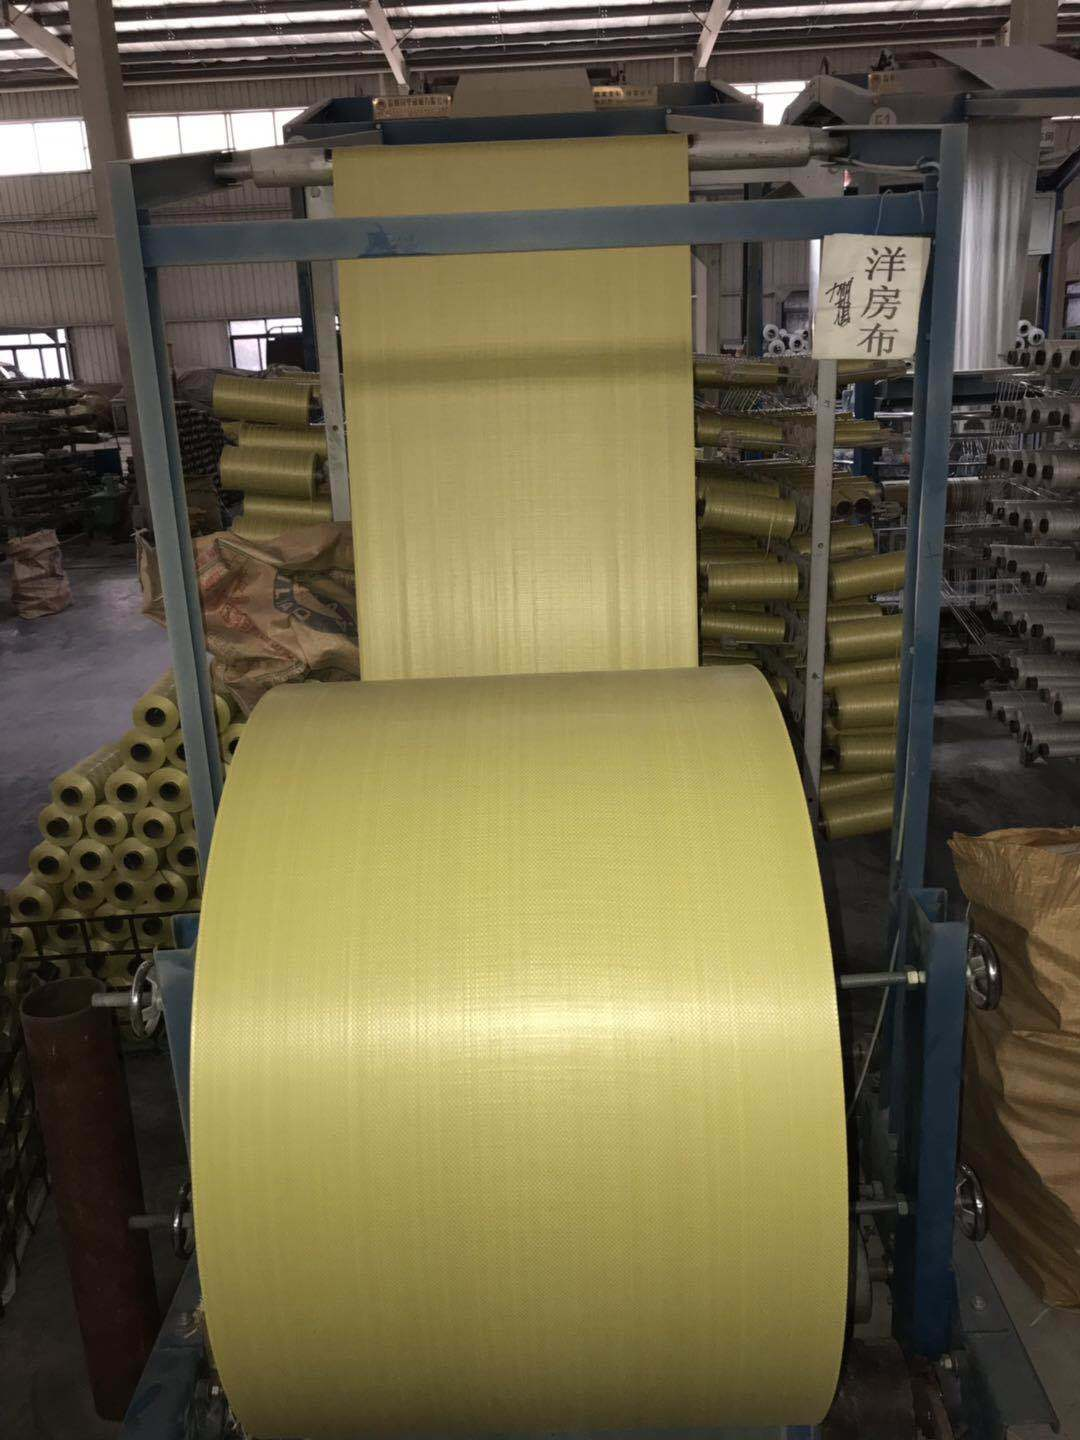 PP Woven Tubular Fabric Cloth in Roll 100% High Quality and Low Price Woven Polypropylene Fabric in Roll for Making Bags pictures & photos